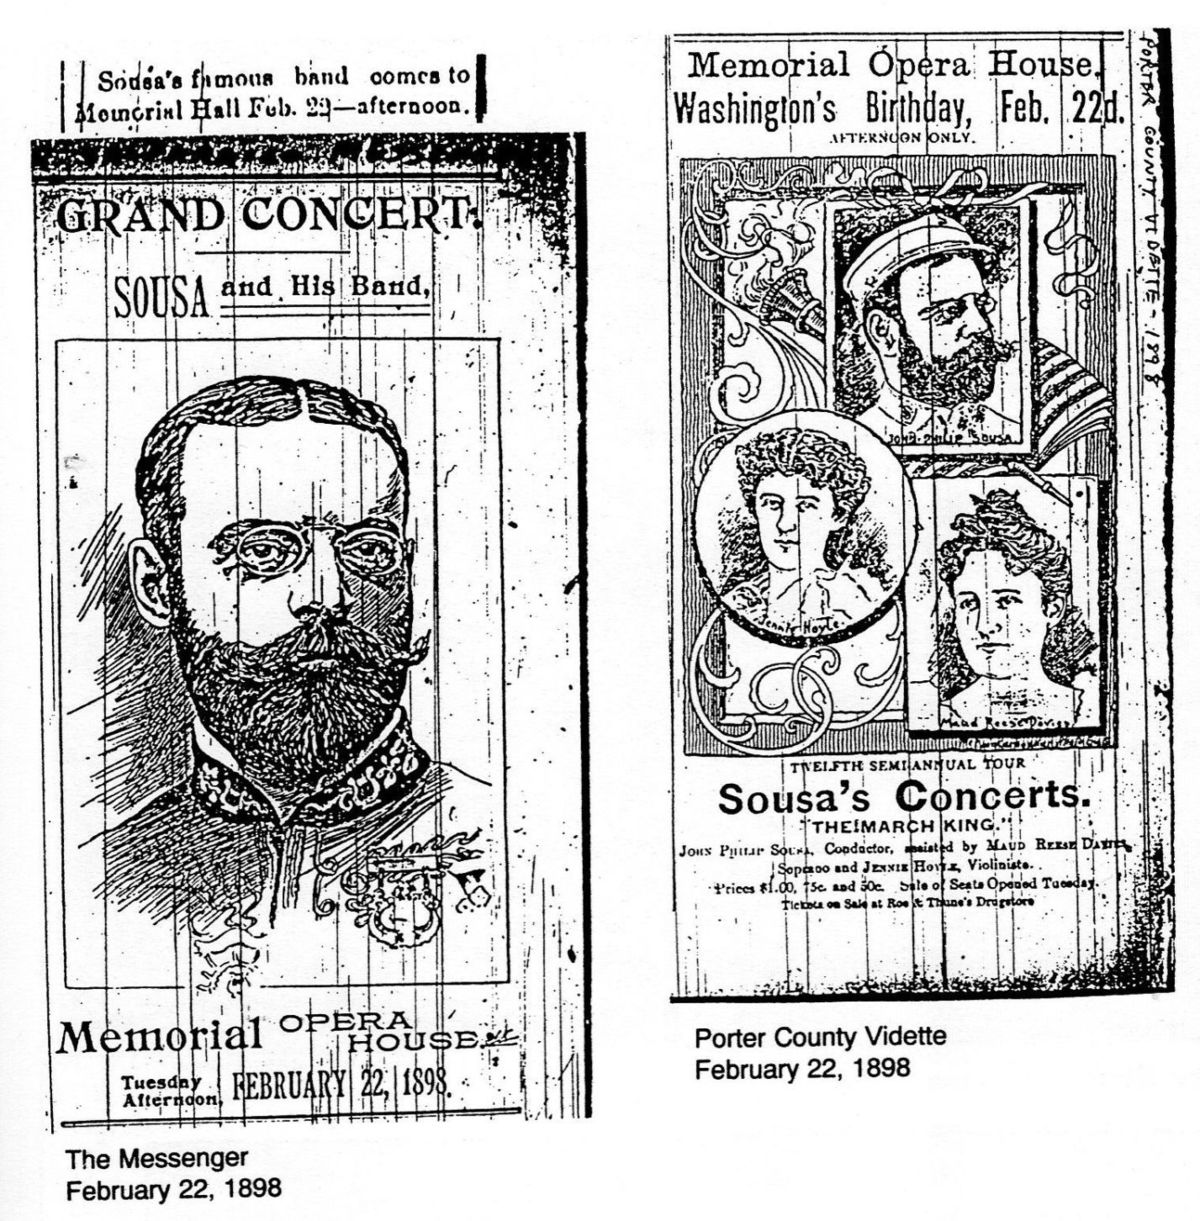 Newspaper Ads from 1898 Advertising John Phillip Sousa Performances At Memorial Opera House